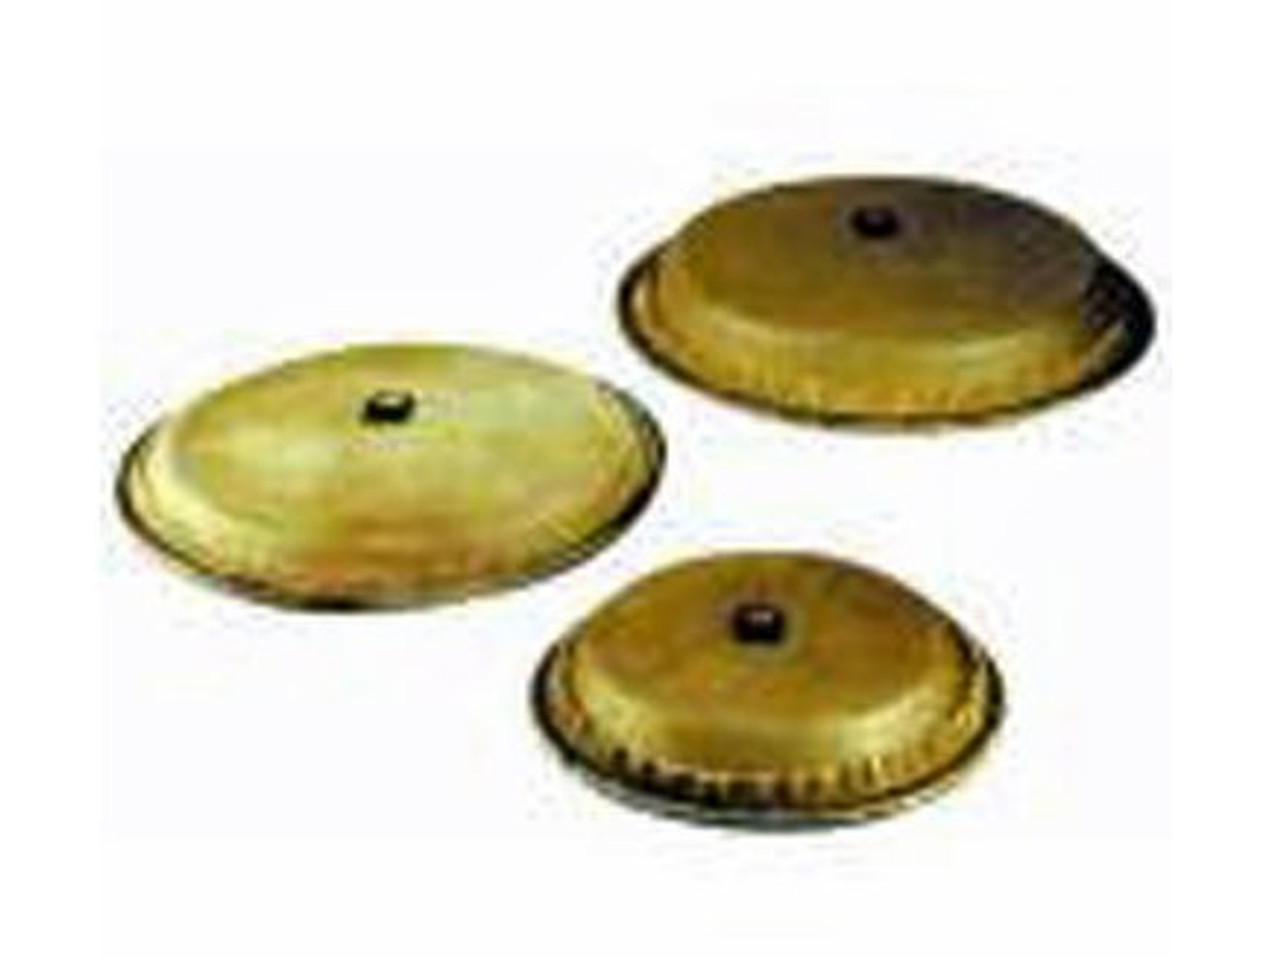 Toca a TP-FHM9 9-Inch Goat Skin Head for Mechanically Tuned Djembe